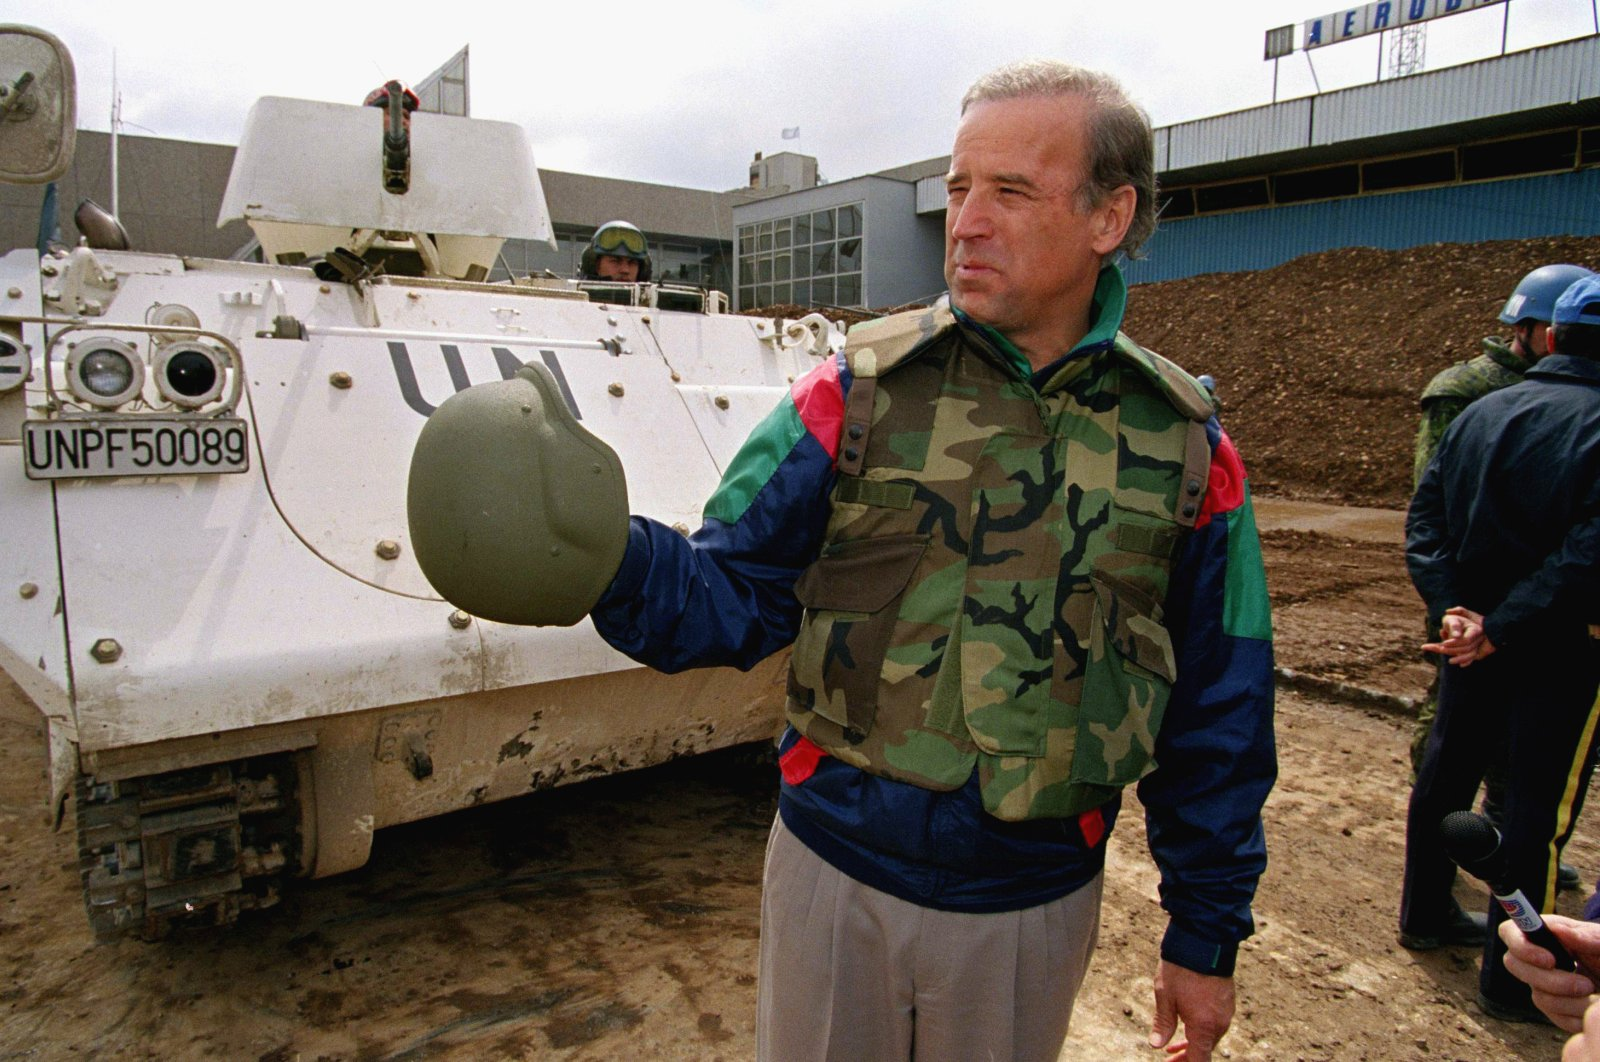 Sen. Joe Biden (D-Del.) stands in front of a Danish armored personnel carrier at the U.N.-controlled Sarajevo Airport, April 9, 1993, making a statement about his trip to the besieged Bosnian capital. (AP Photo)